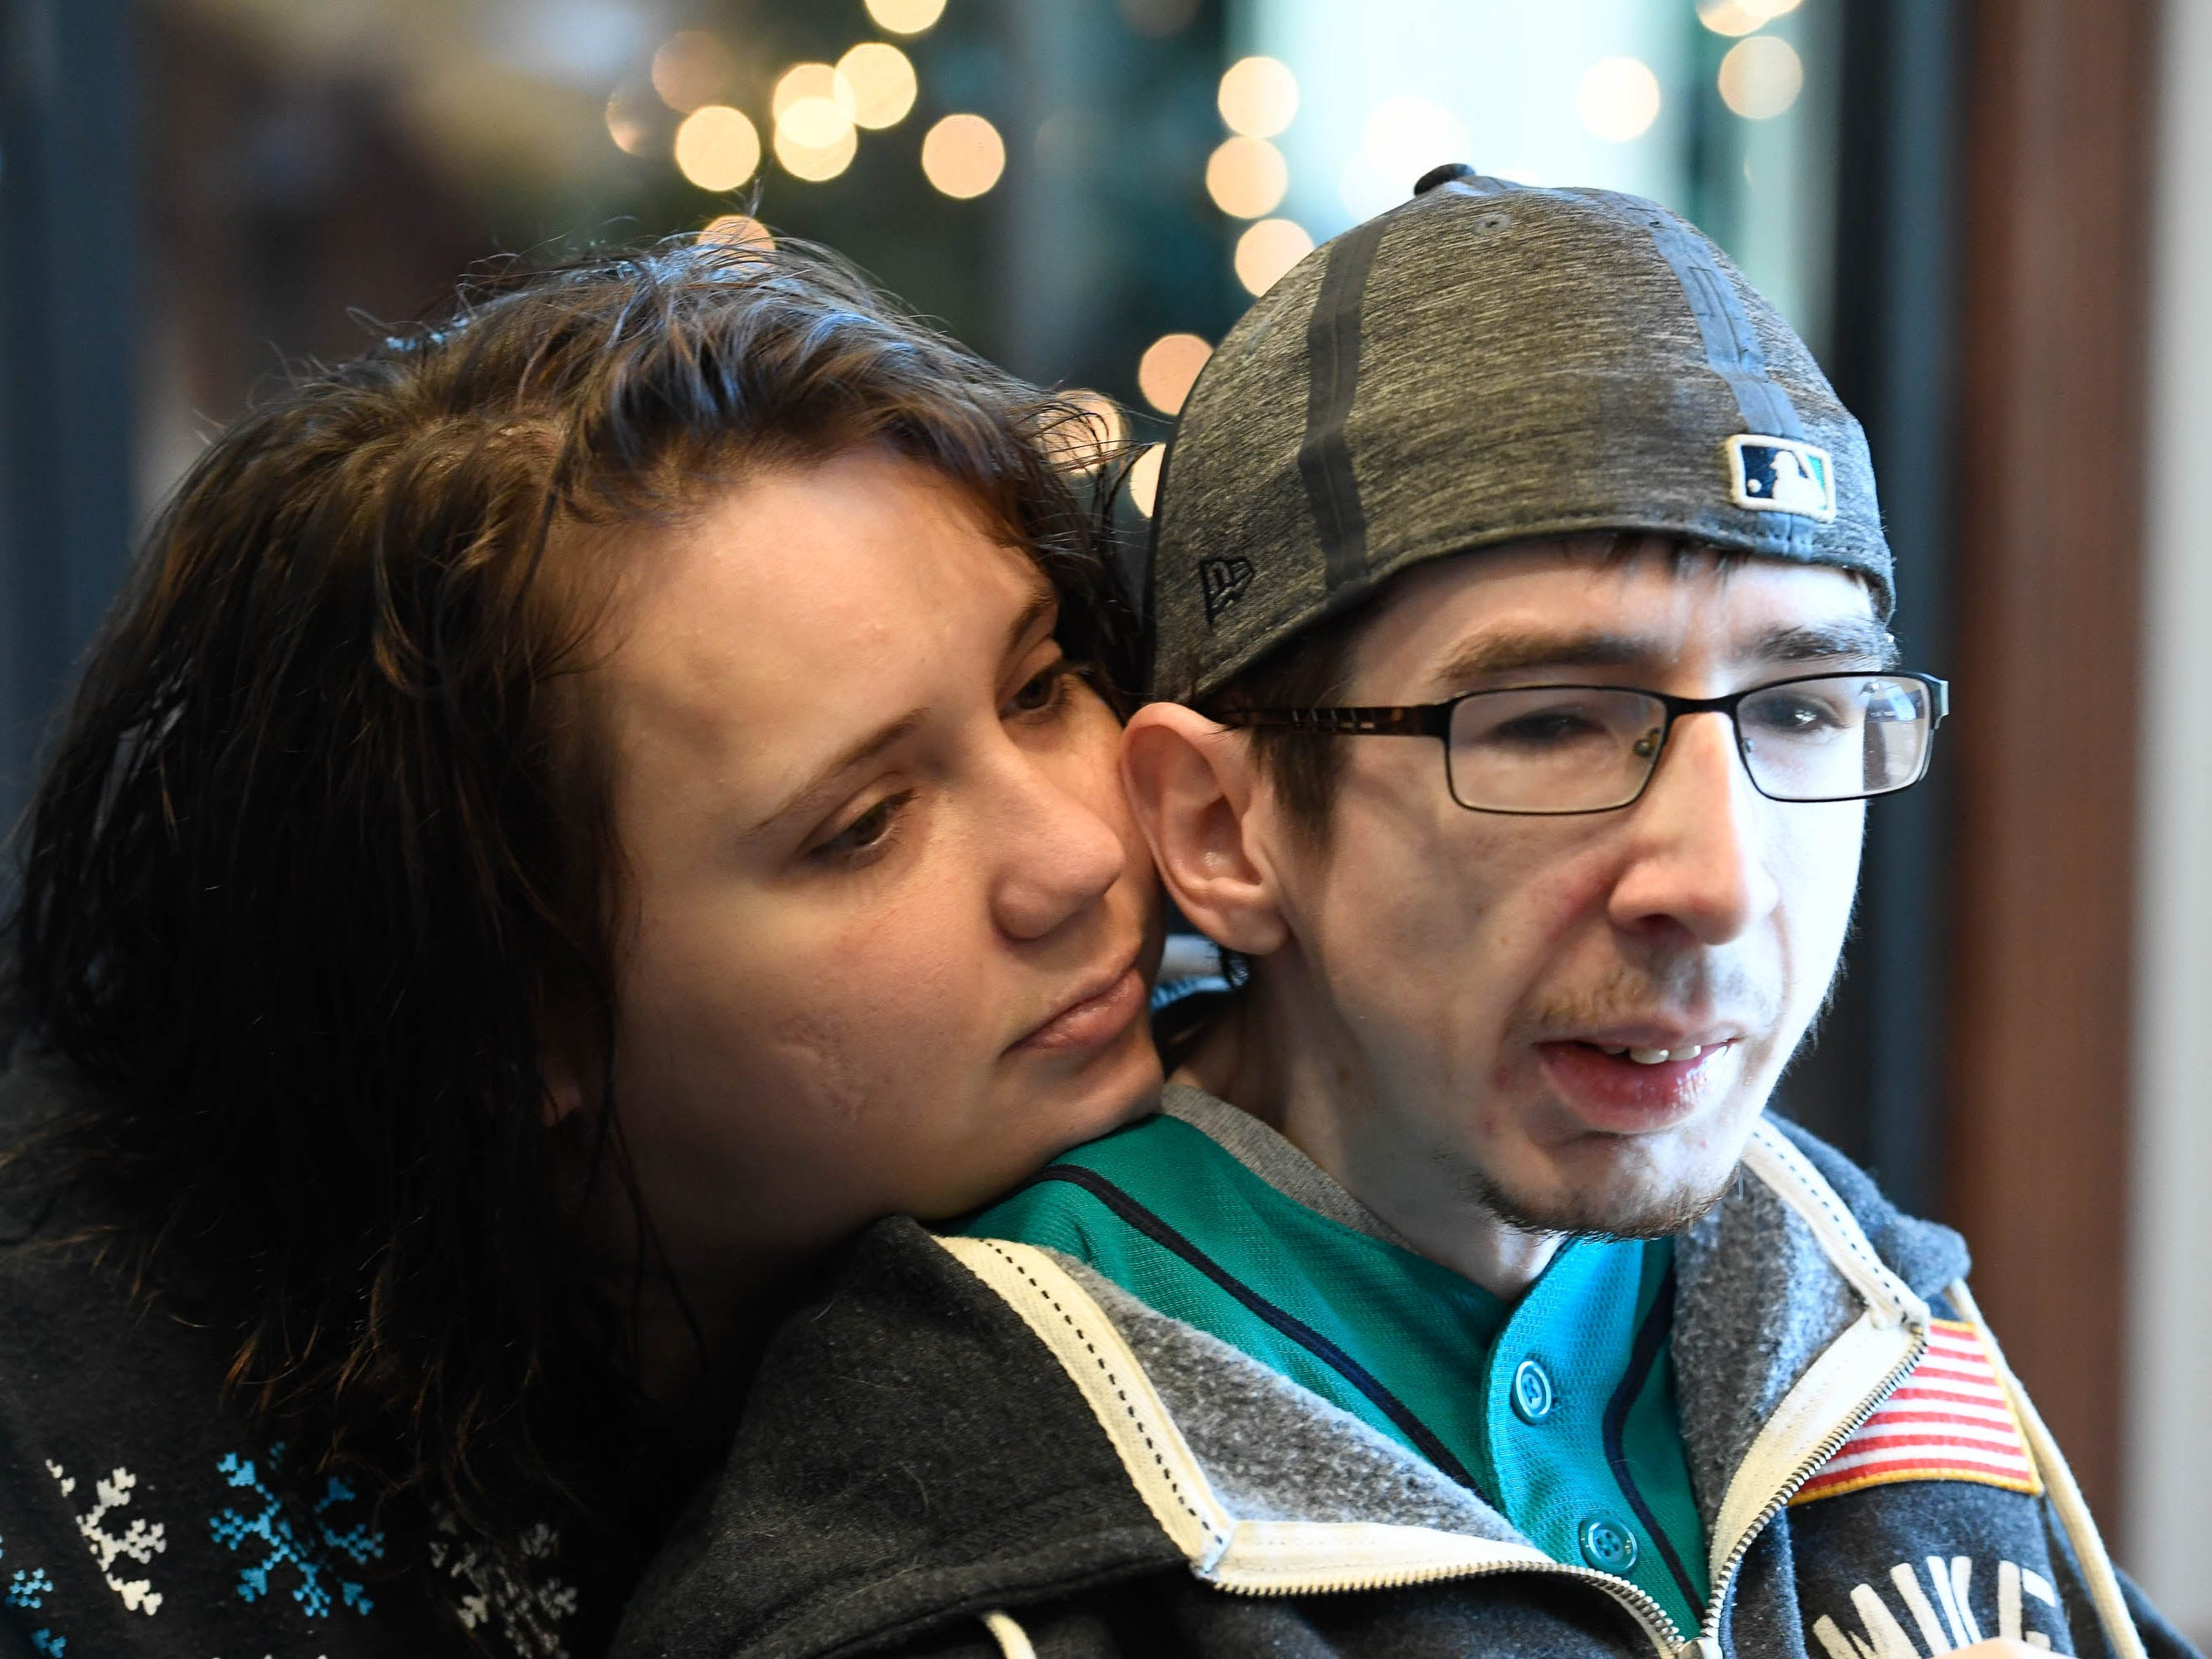 Kendra Creek and Wade Conway are moments away from signing papers to close the deal on their first apartment together in December of last year. Wade, born with arthrogryposis multiplex congenita, and Kendra, whose bacterial meningitis left her a quadruple amputee, moved in together shortly afterwards and are now engaged to be married.